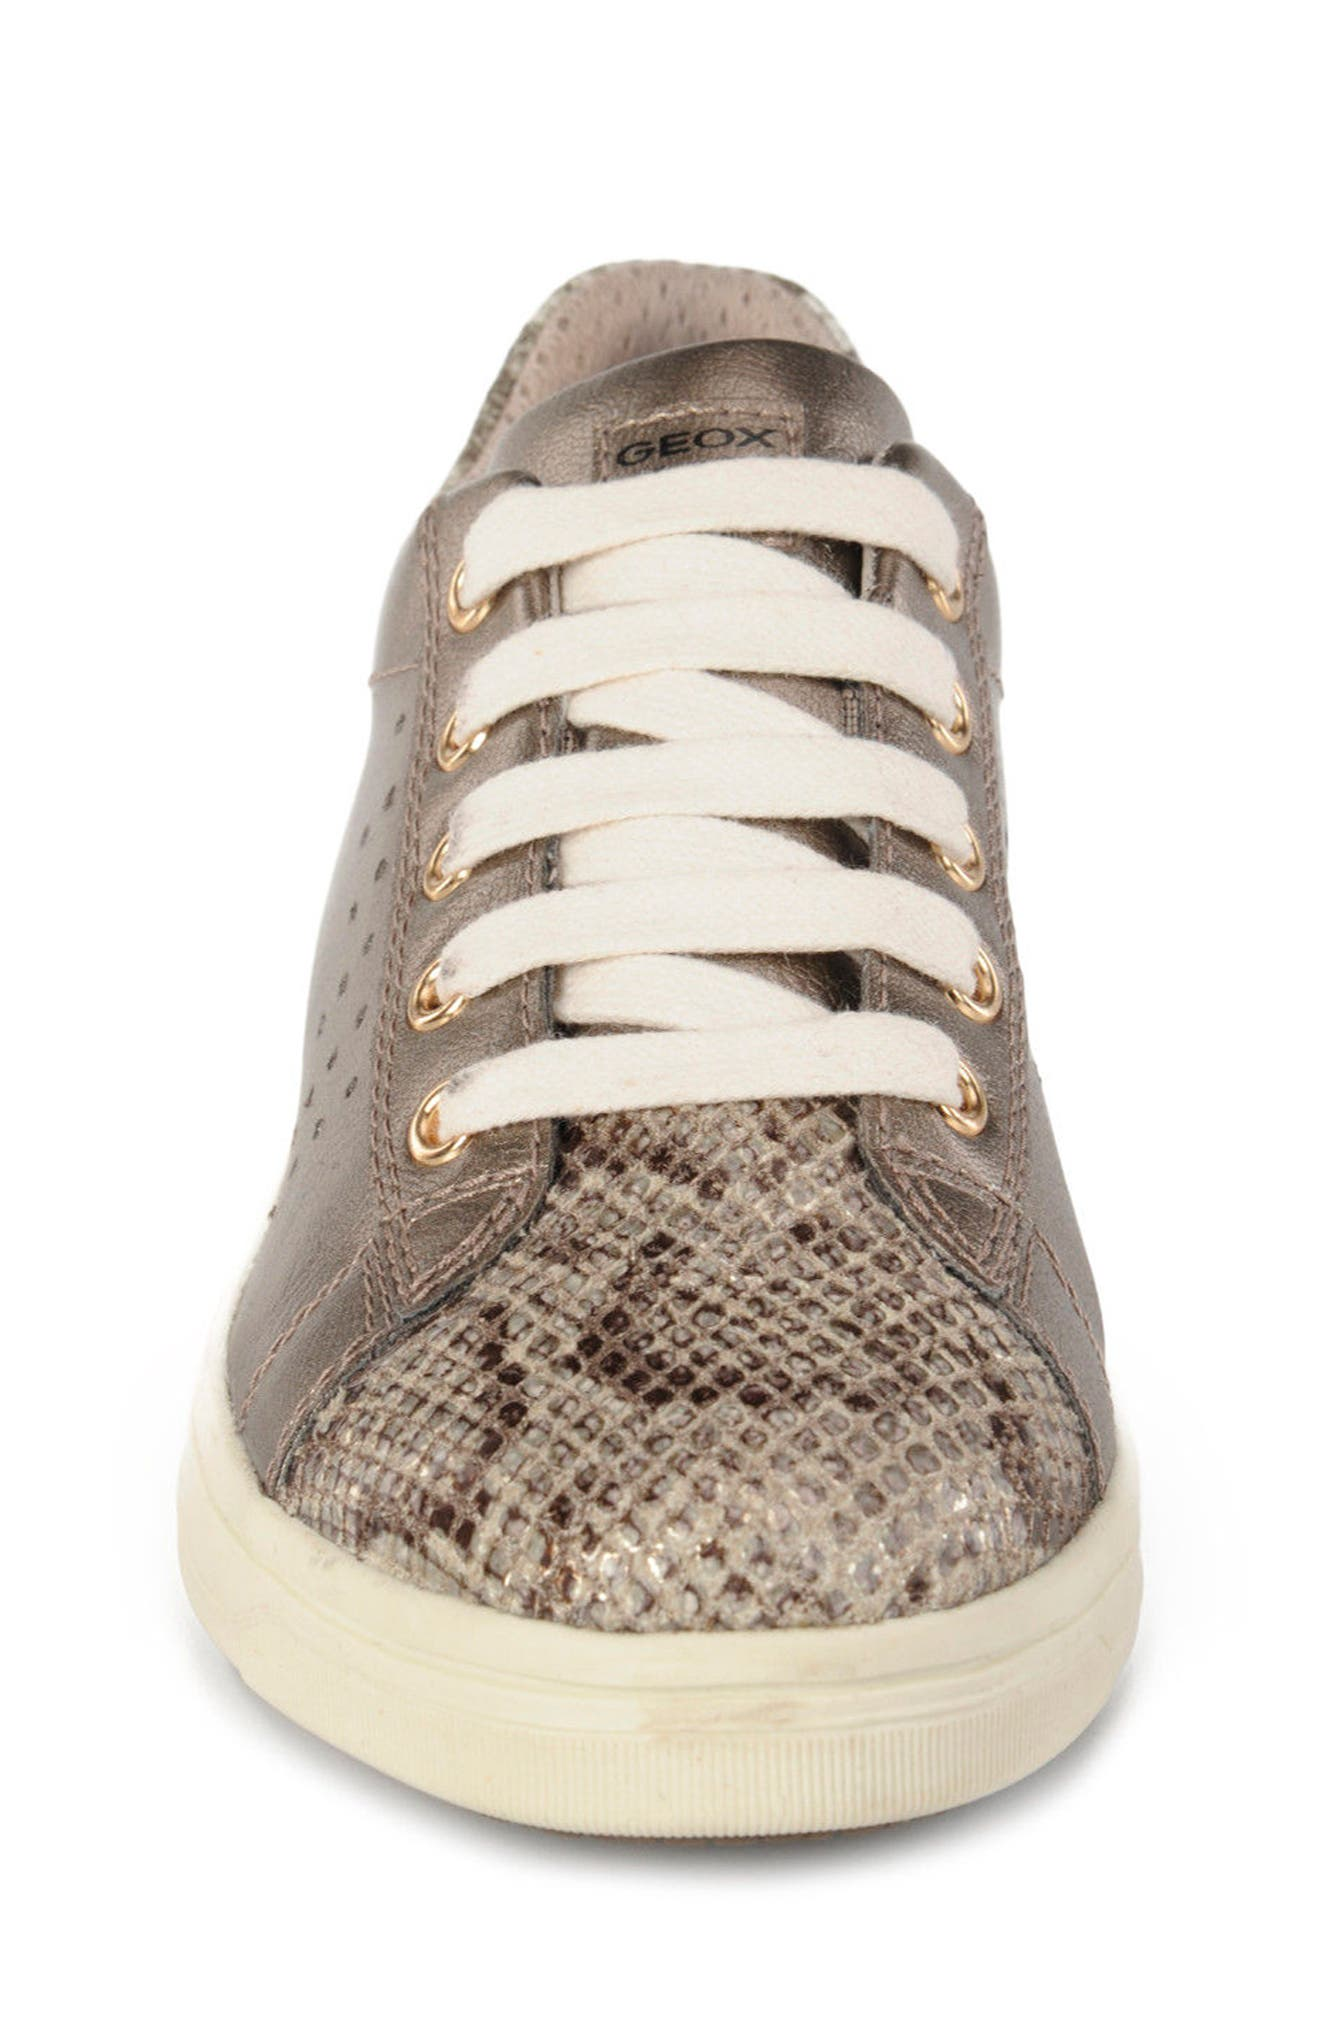 Cave Up Girl Low Top Sneaker,                             Alternate thumbnail 4, color,                             710